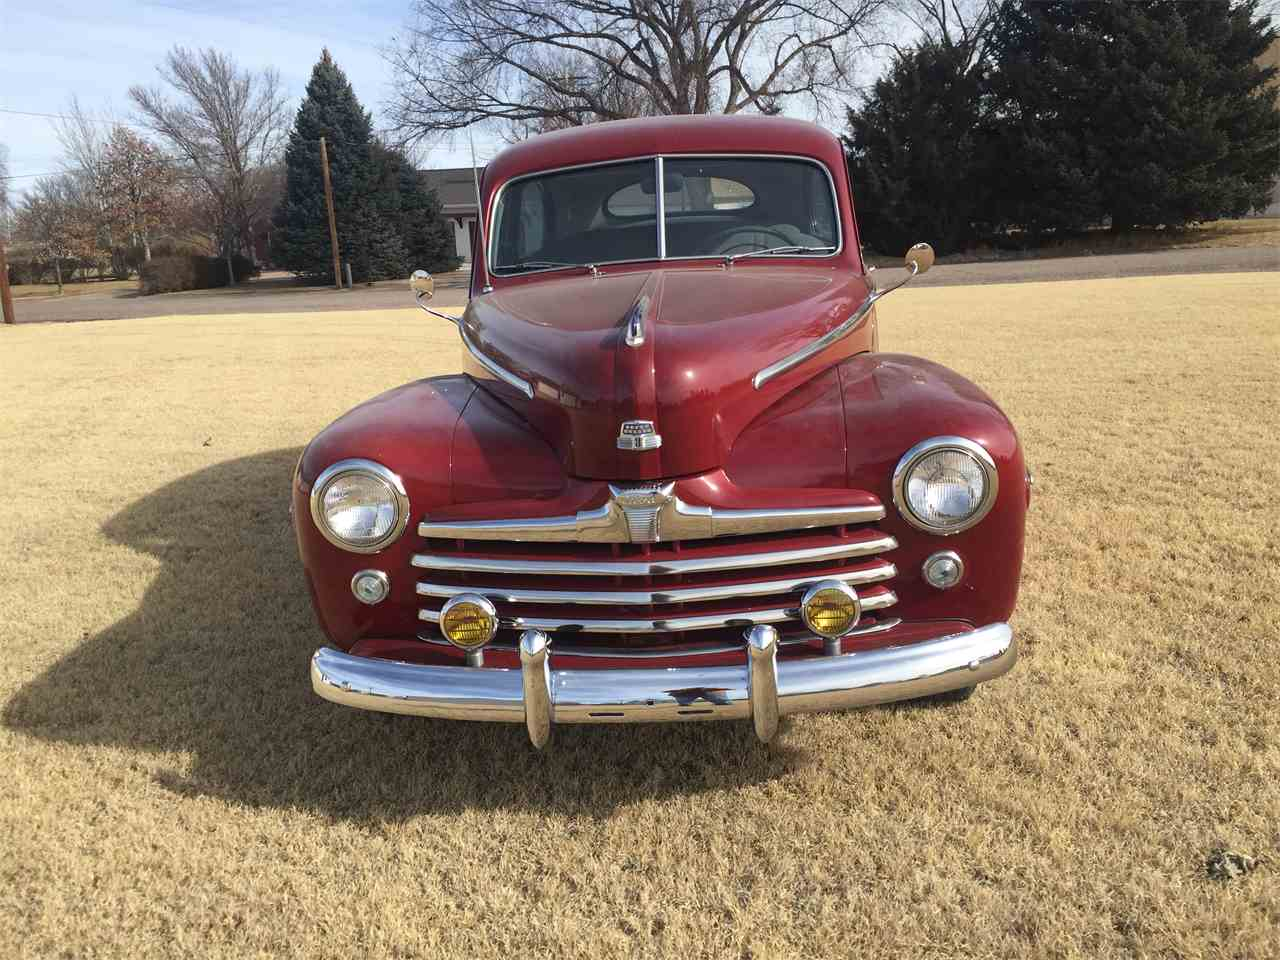 Large Picture of Classic '48 Ford Super Deluxe - $15,000.00 Offered by a Private Seller - M4DA